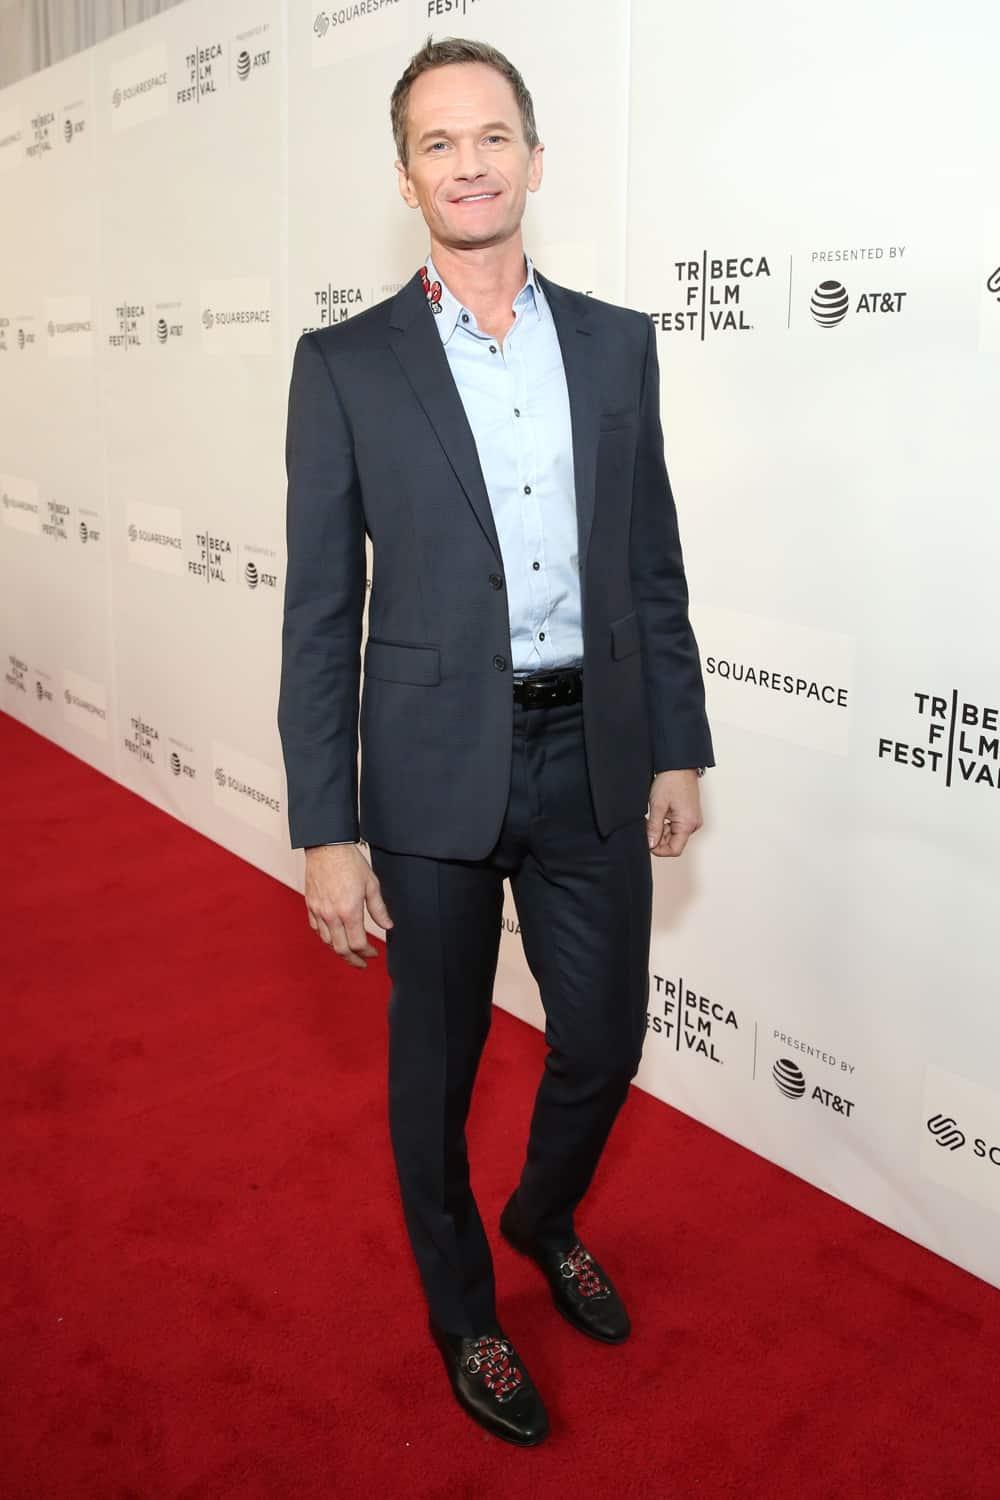 Neil Patrick Harris World Premiere Of 'GAY CHORUS DEEP SOUTH' Documentary, Developed And Produced By Airbnb At The 2019 Tribeca Film Festival